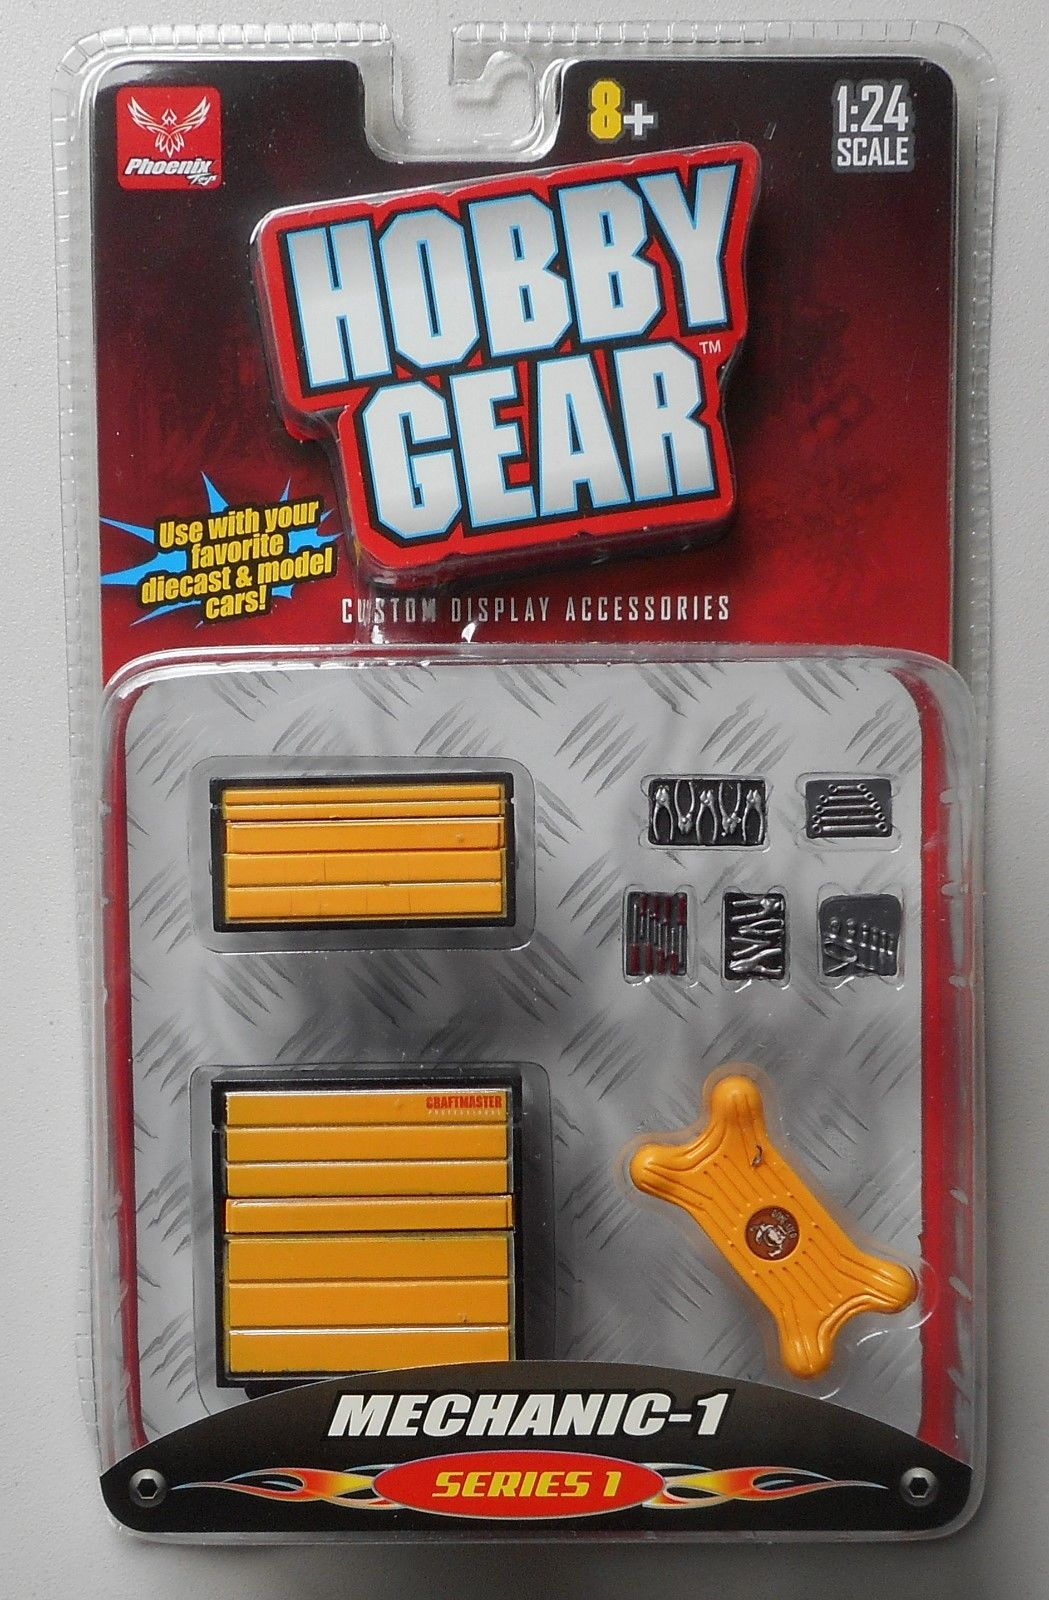 MECHANIC 1 1:24 Scale HOBBY GEAR GARAGE Diorama ACCESSORY TOOLS CREEPER  TOOL BOX